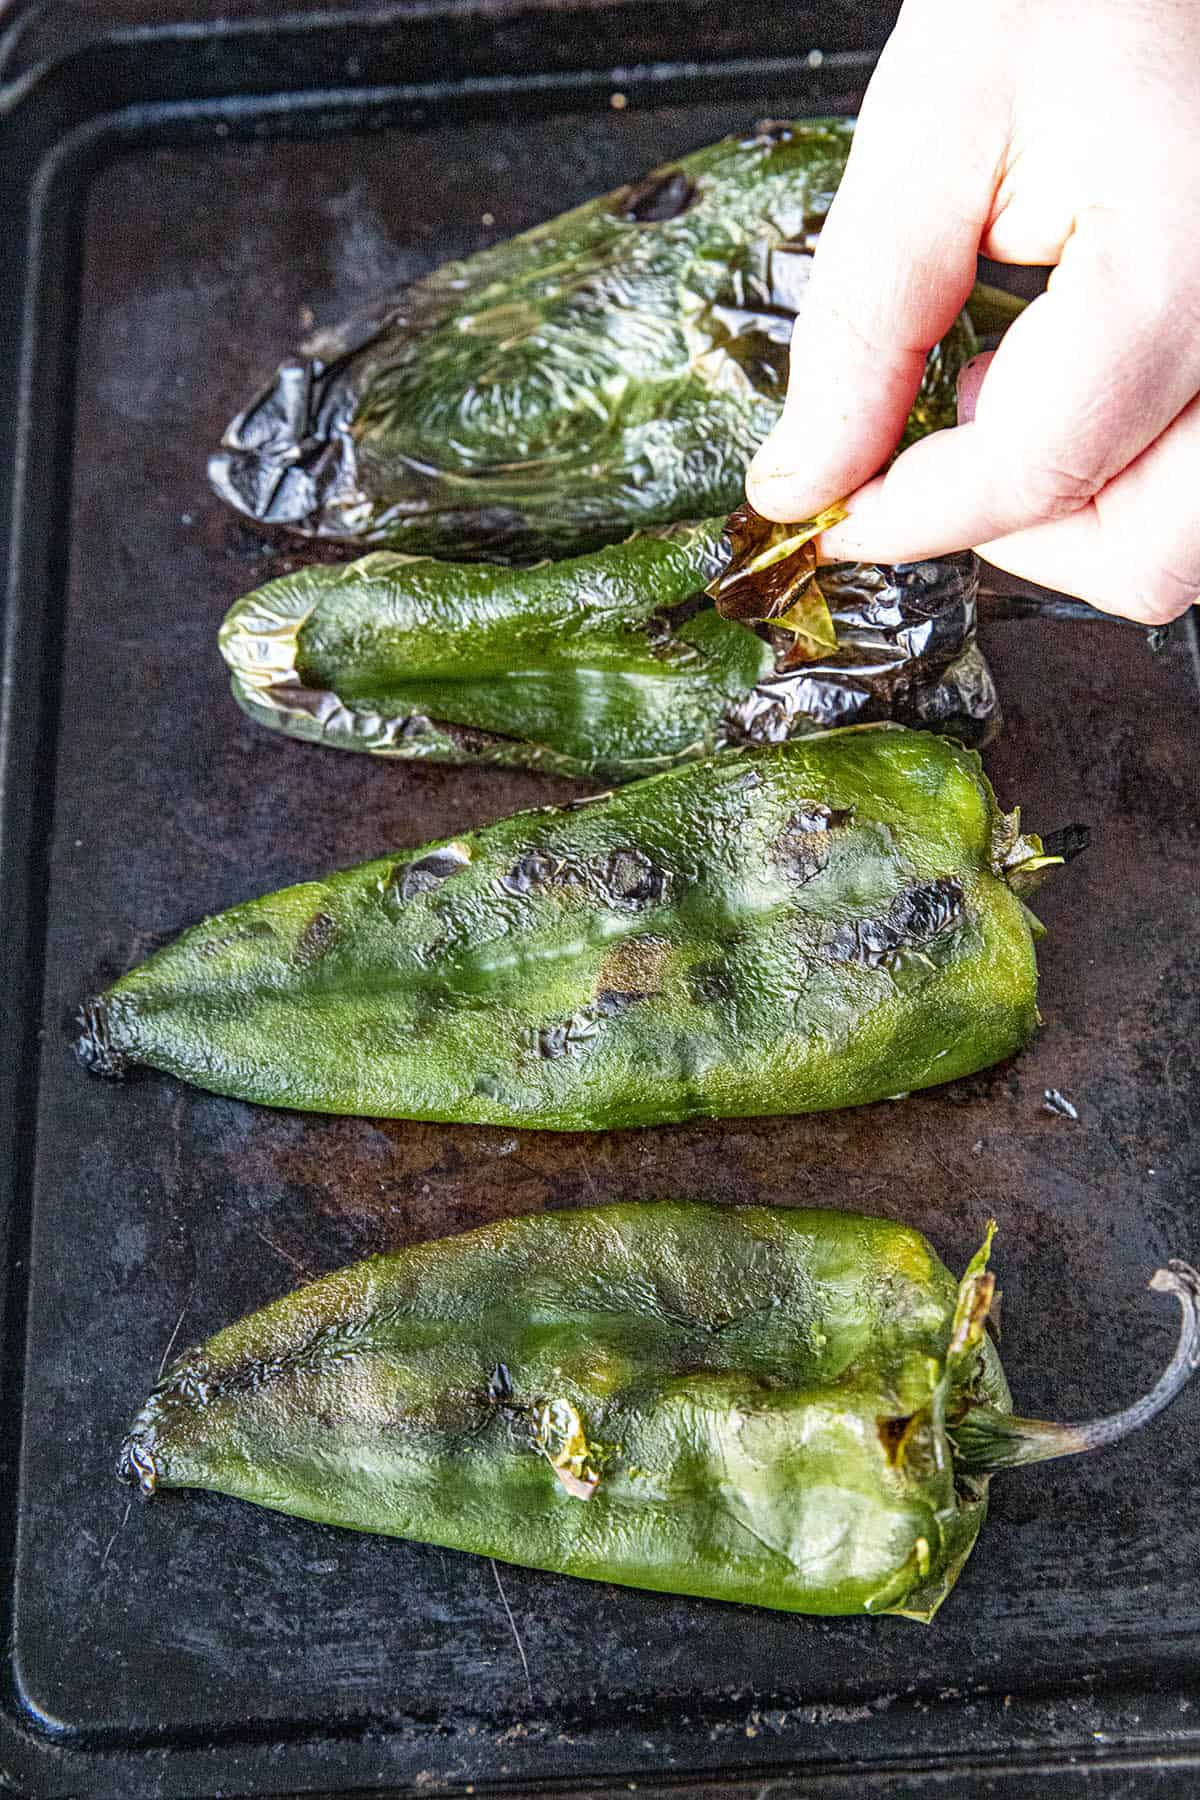 Peeling the grilled poblano peppers